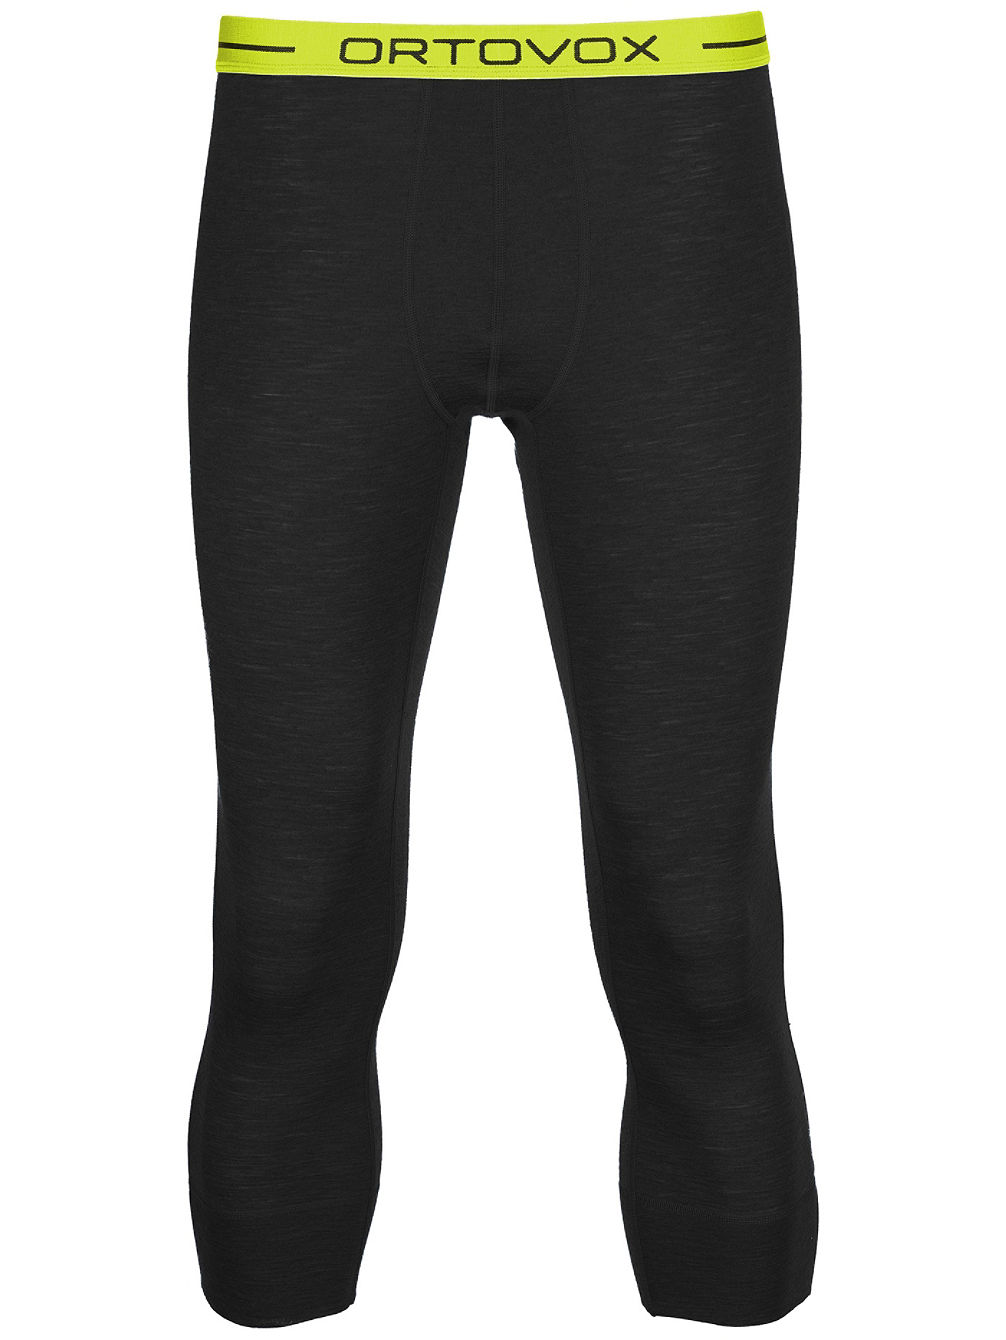 105 Ultra Short Tech Pants